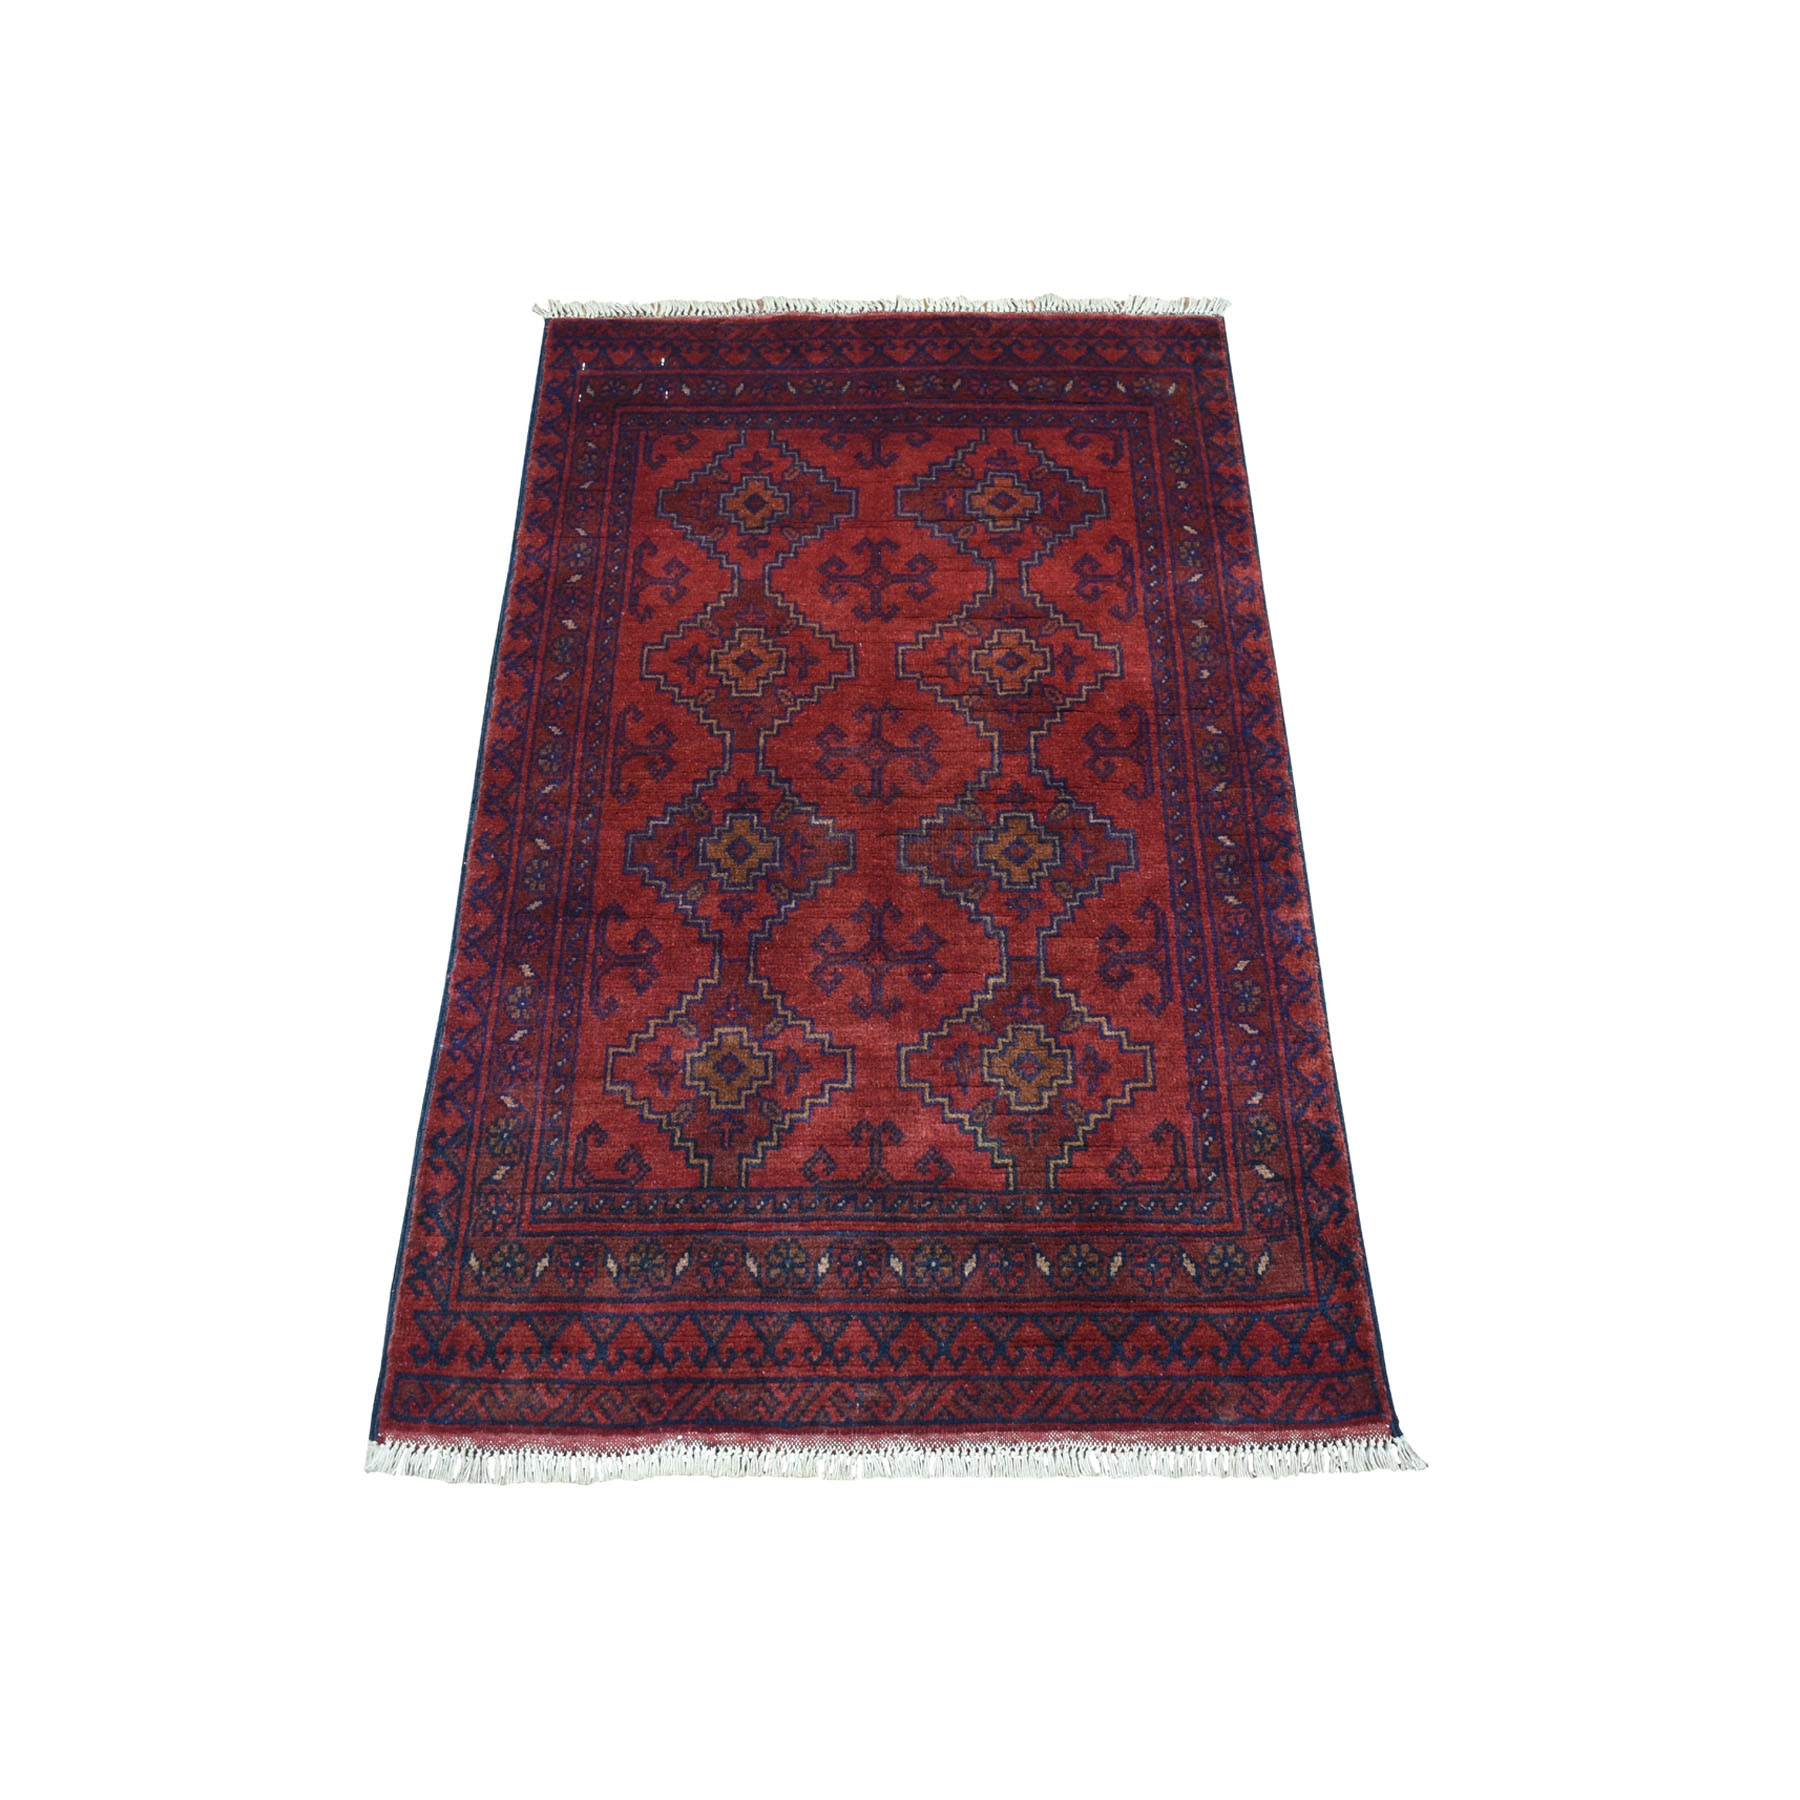 "2'5""X3'10"" Deep And Saturated Red Geometric Afghan Andkhoy Pure Wool Hand Knotted Oriental Rug moaecd08"